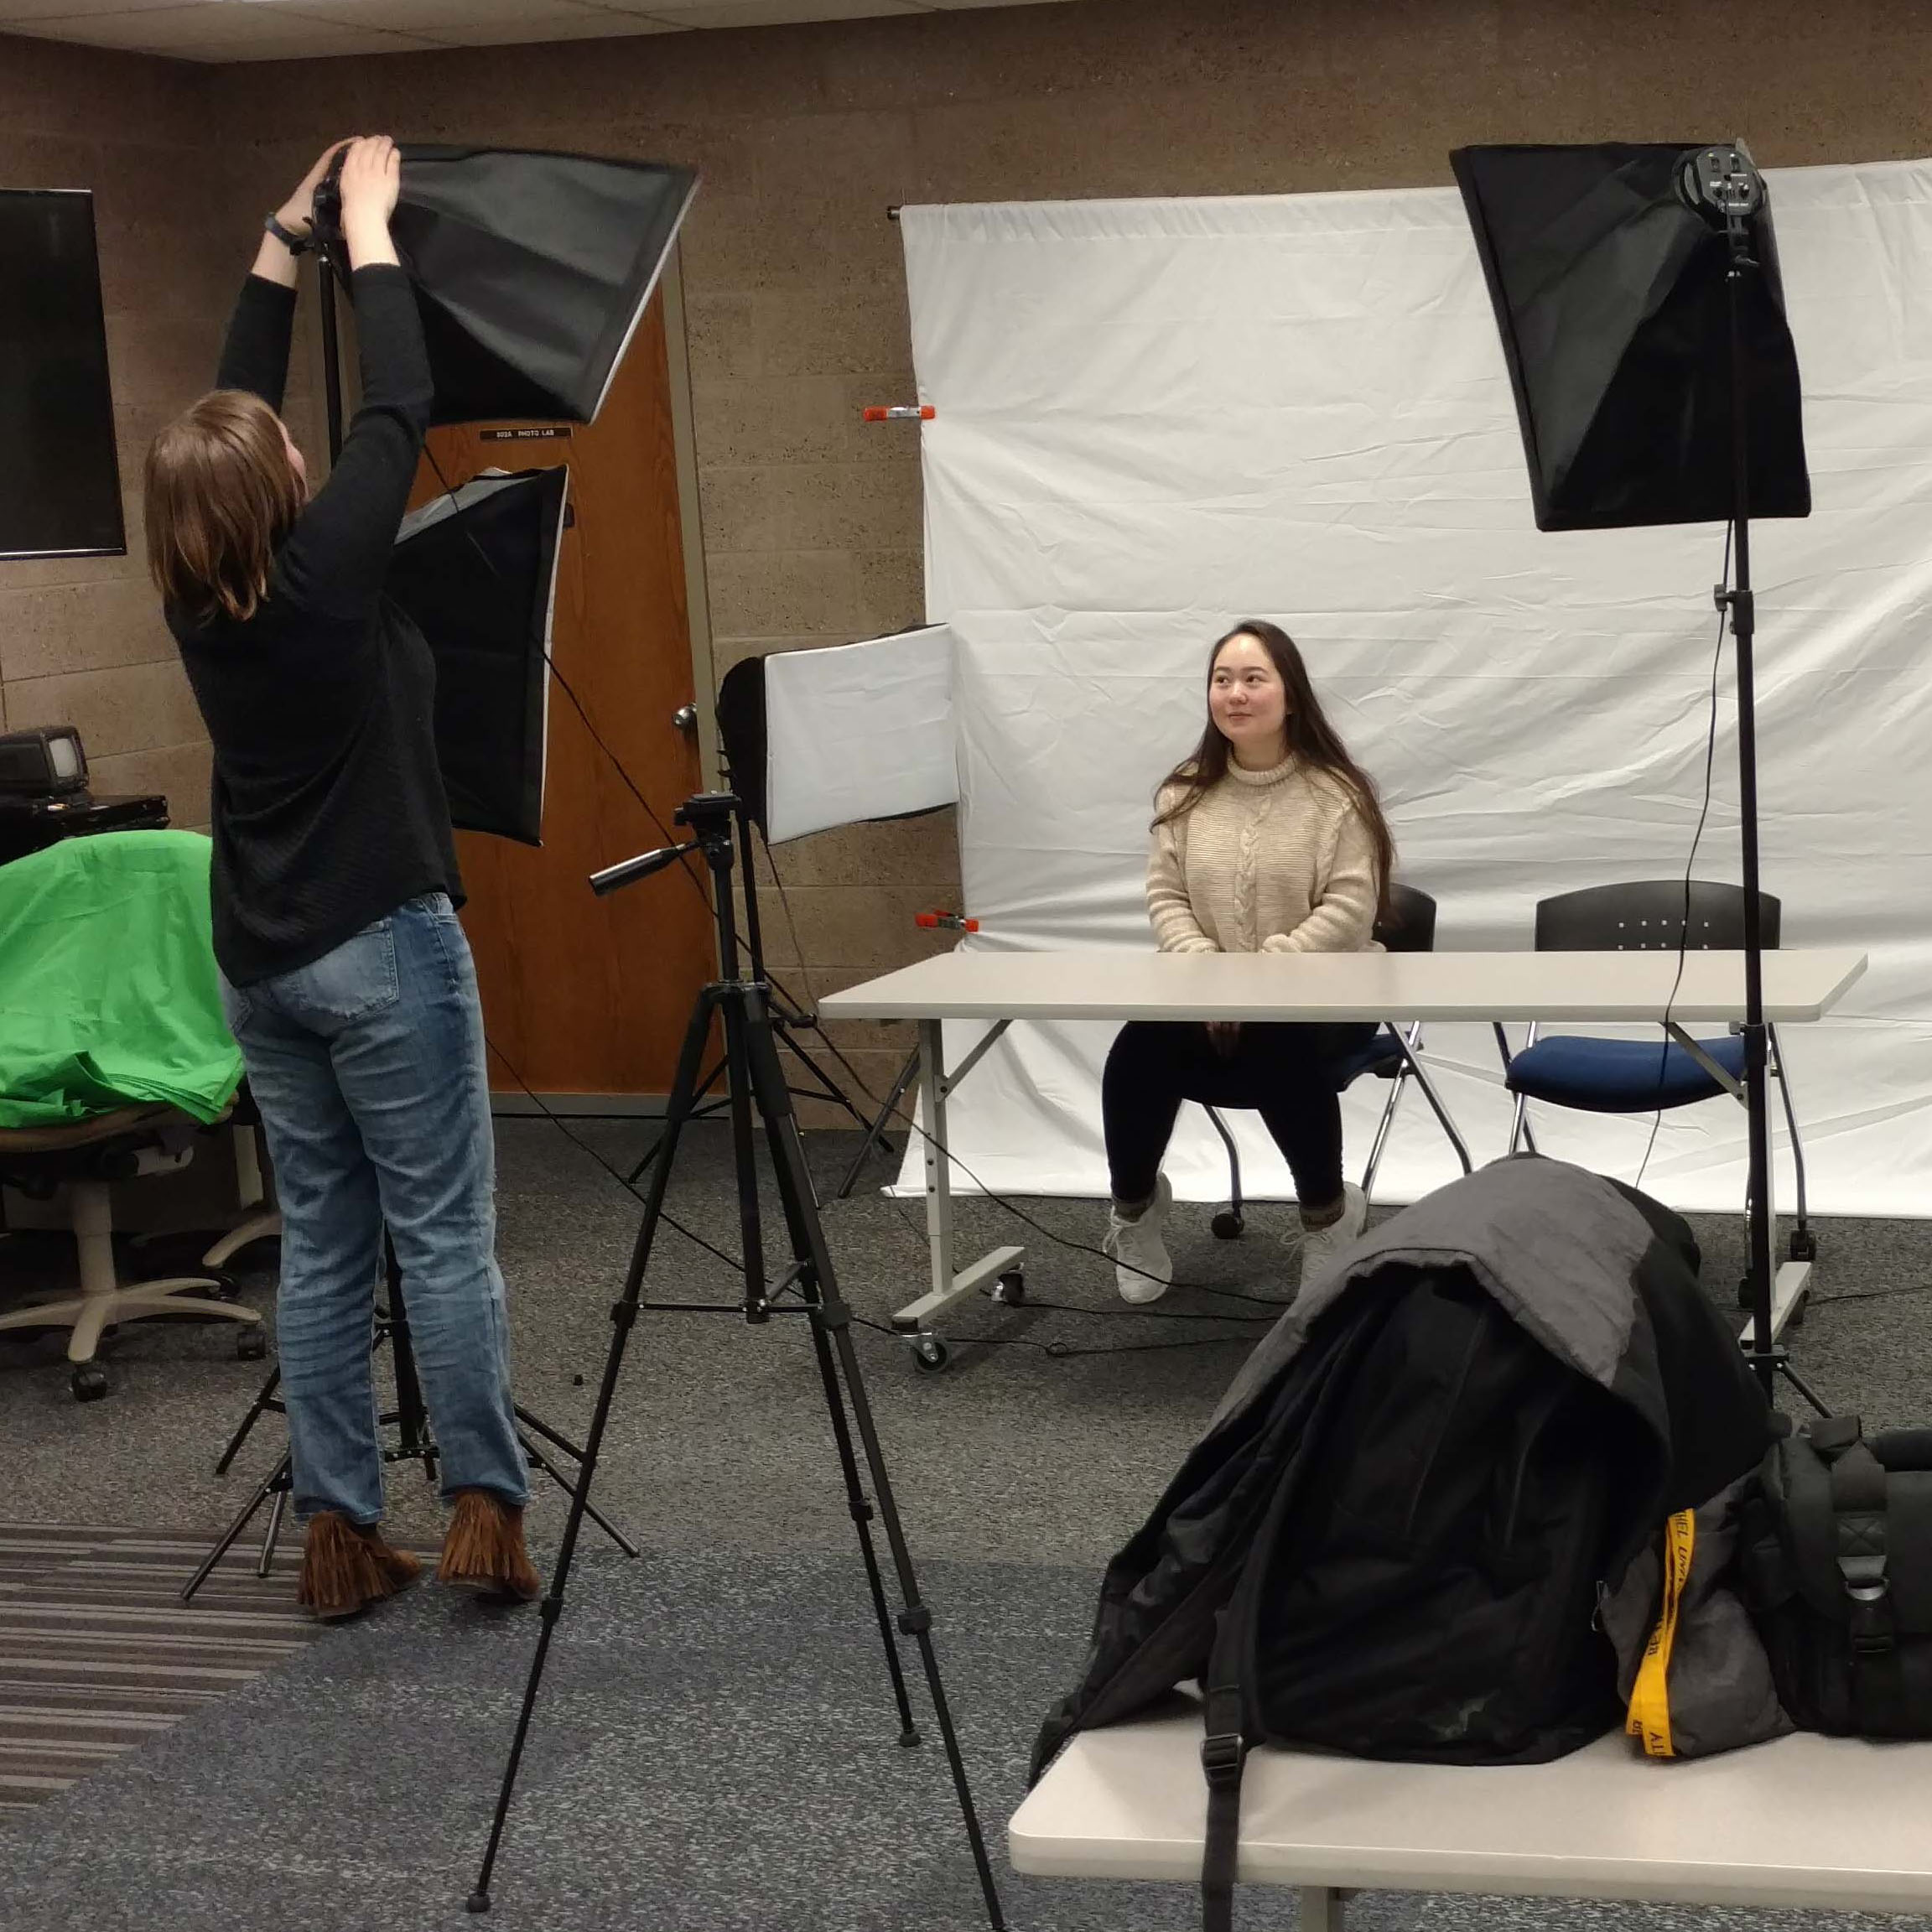 video recording set up in makerspace